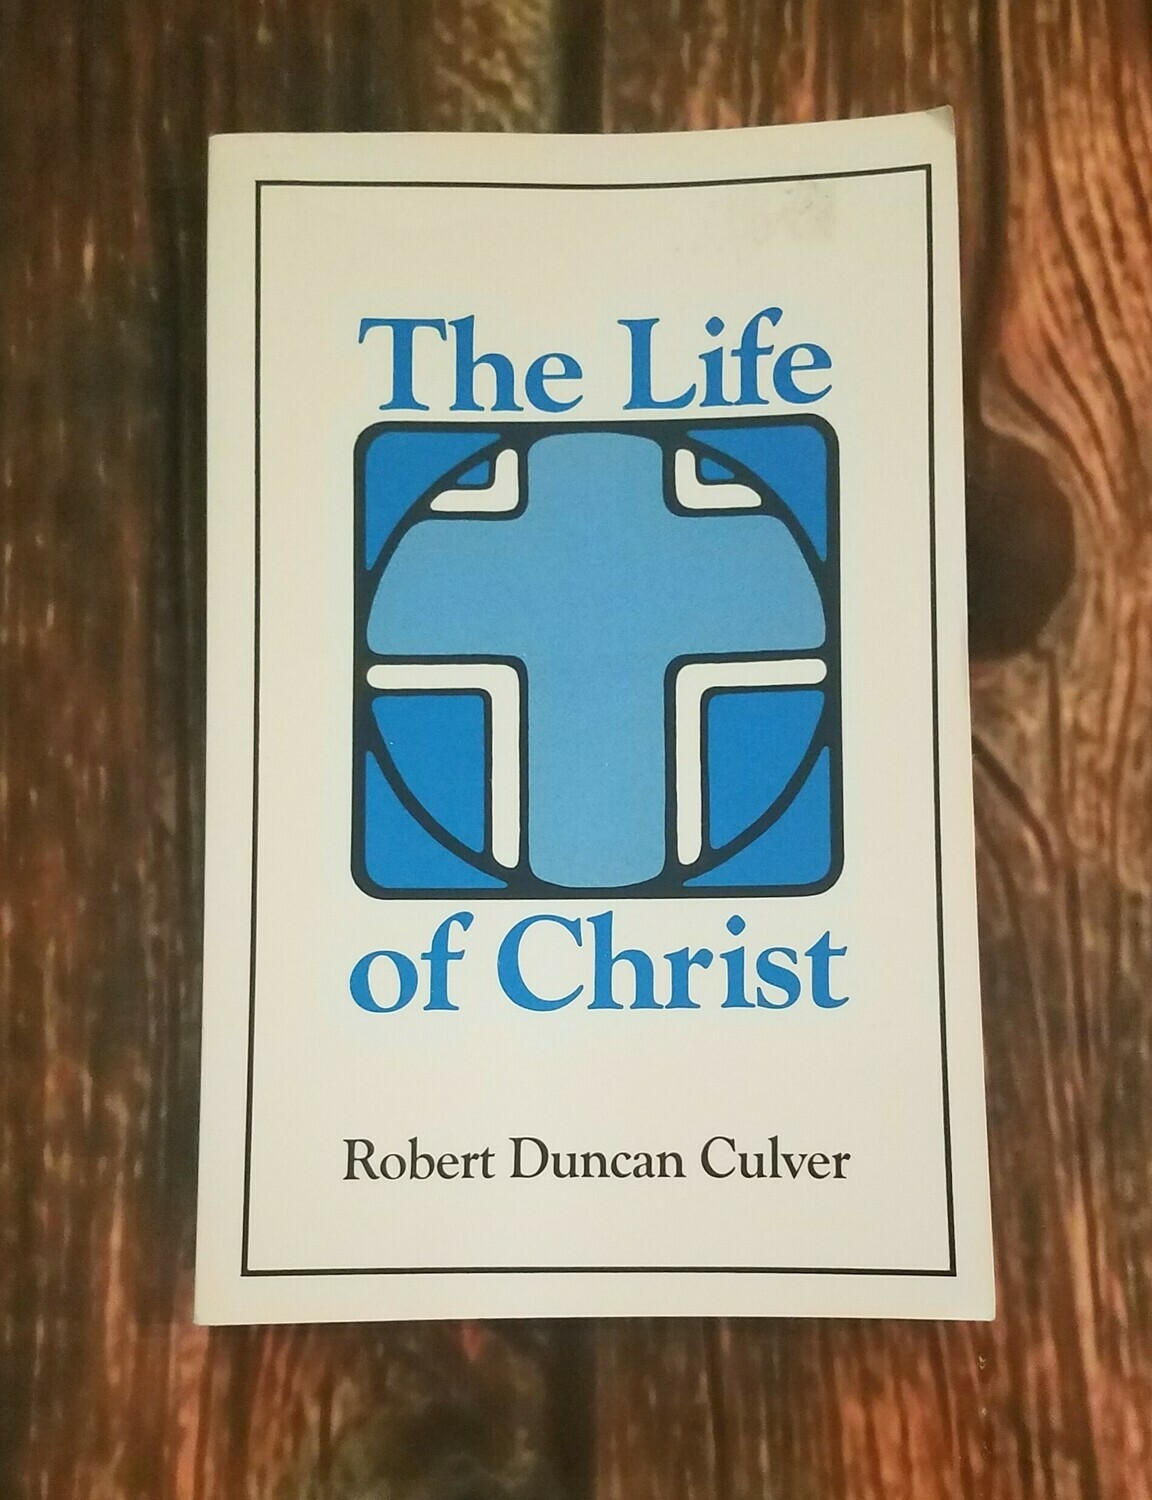 The Life of Christ by Robert Duncan Culver